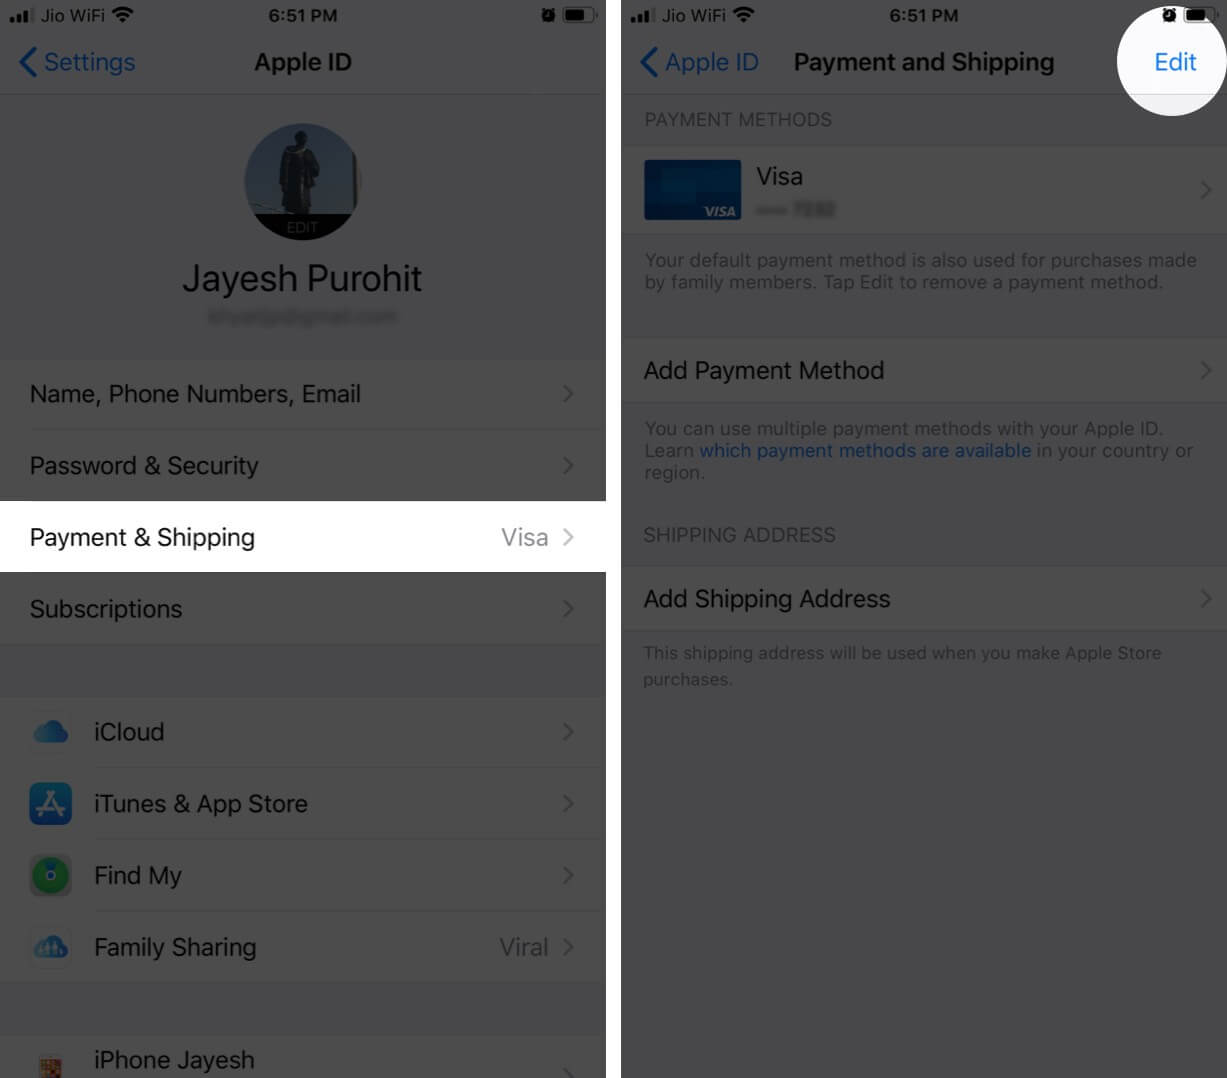 Tap on Payment and Shipping and Then Tap on Edit in Apple ID on iPhone